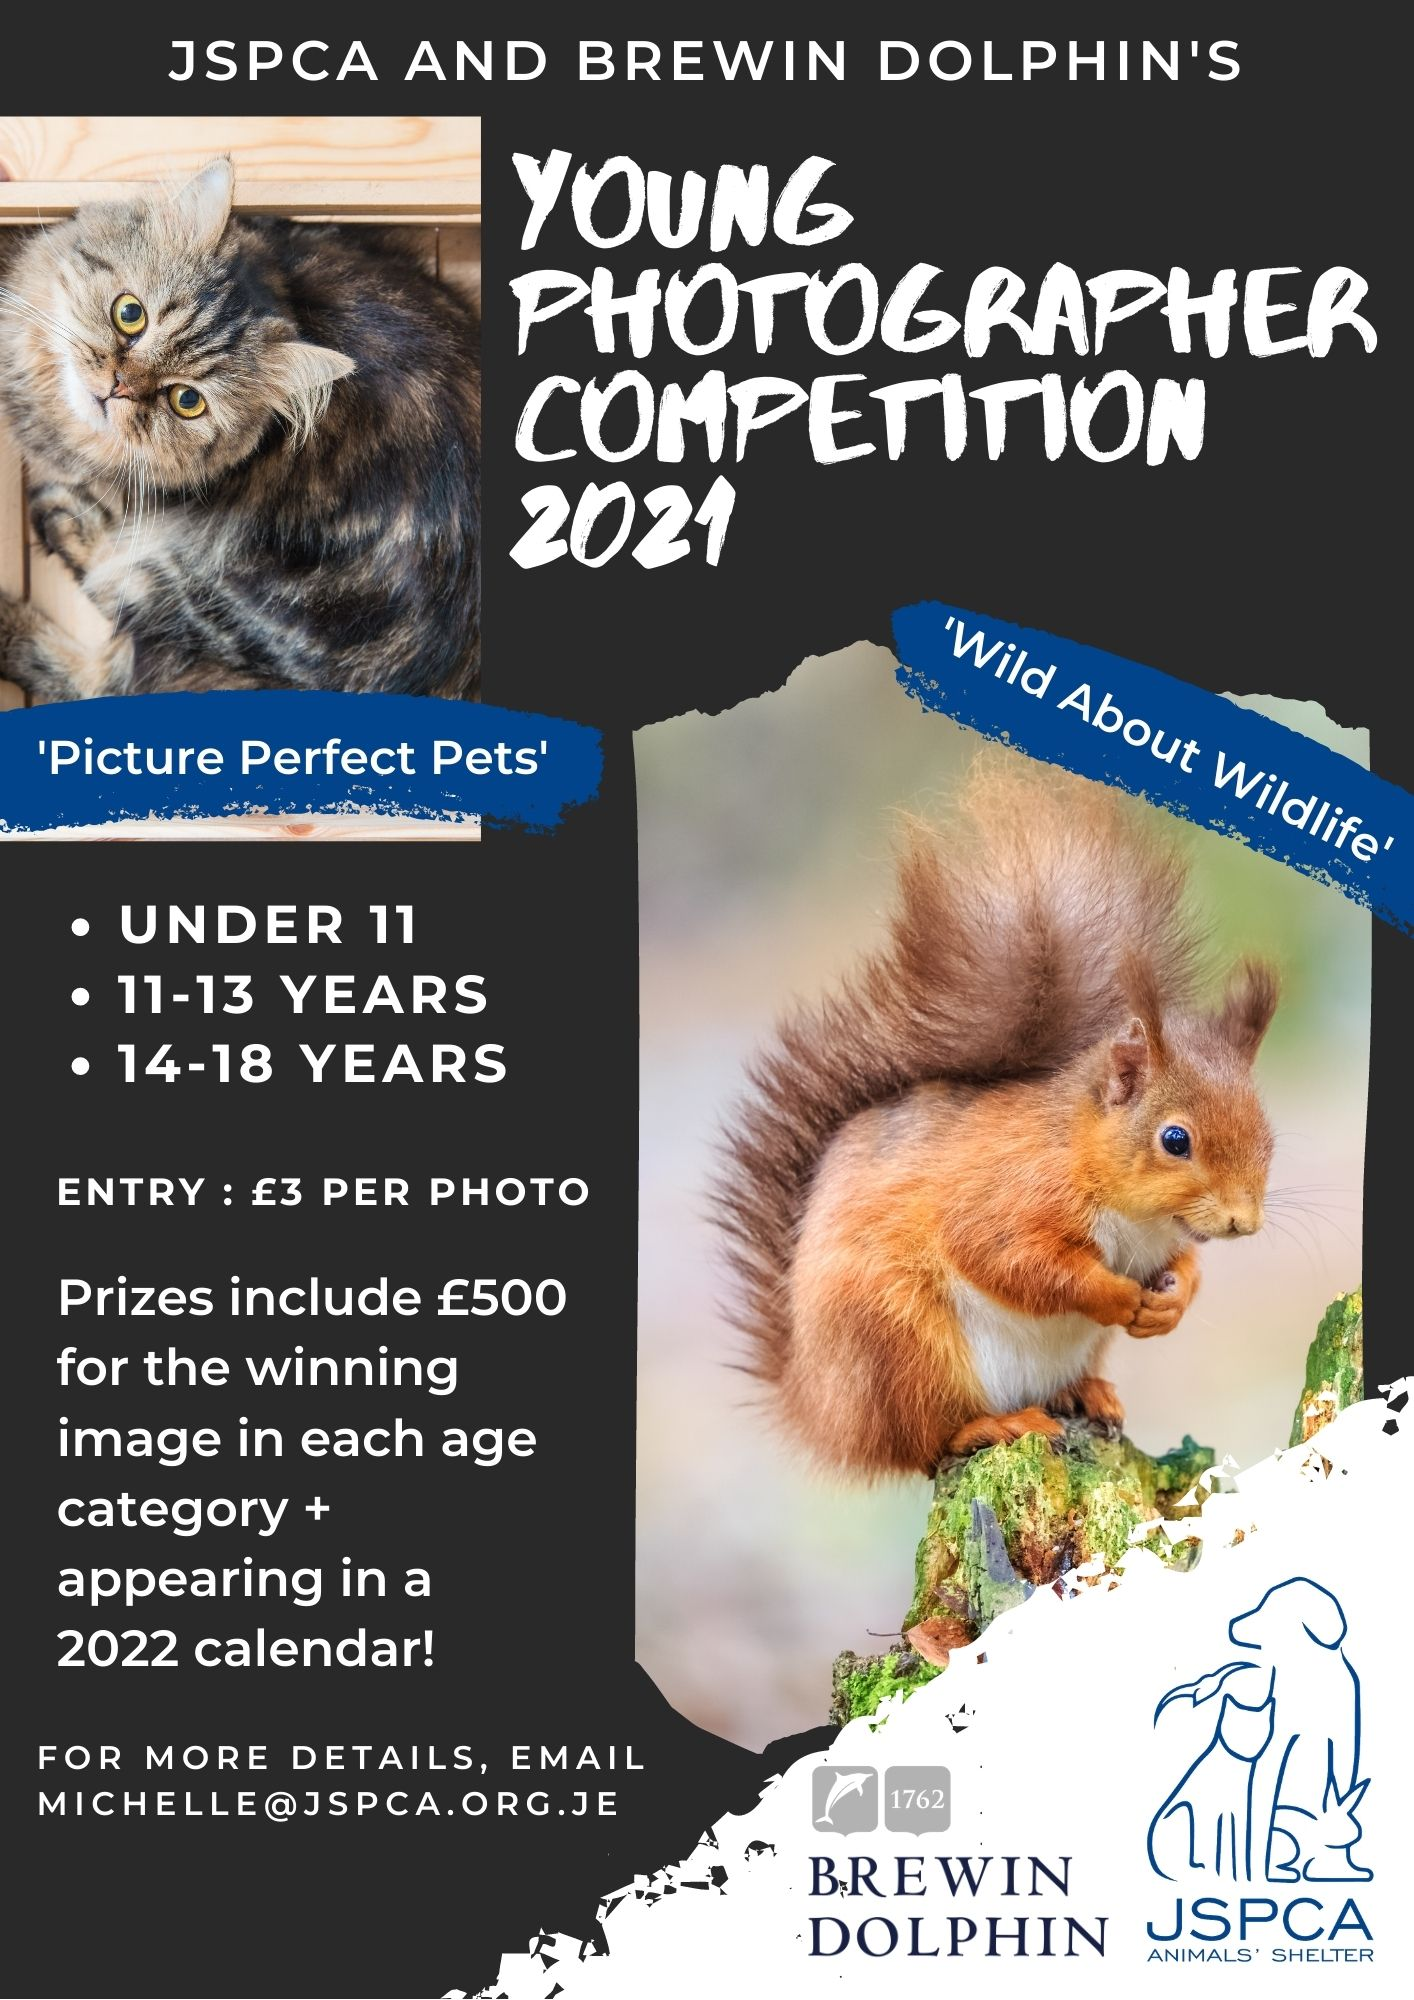 JSPCA Young Photographer Competition